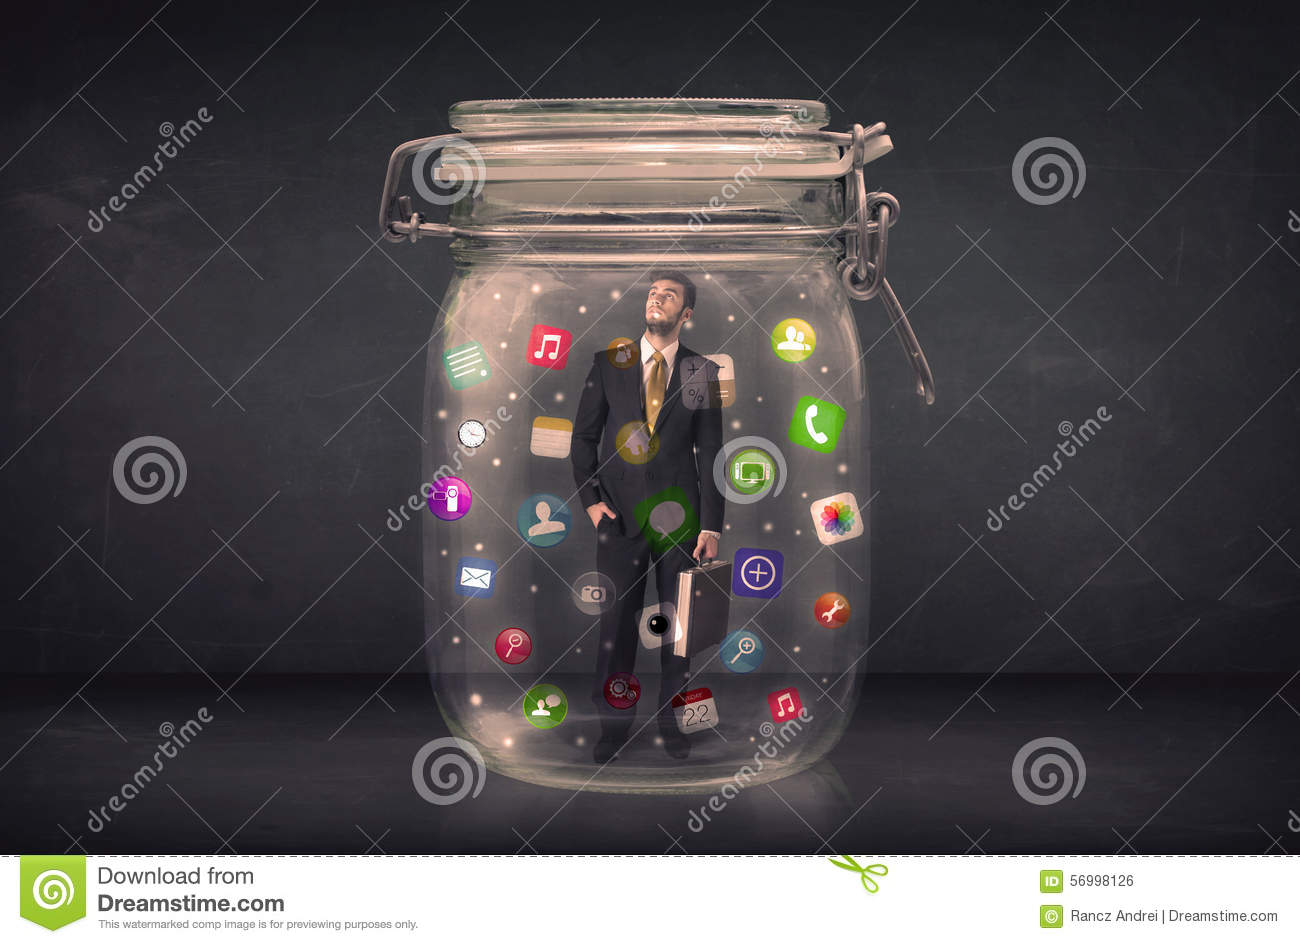 Businessman captured in a glass jar with colourful app icons con